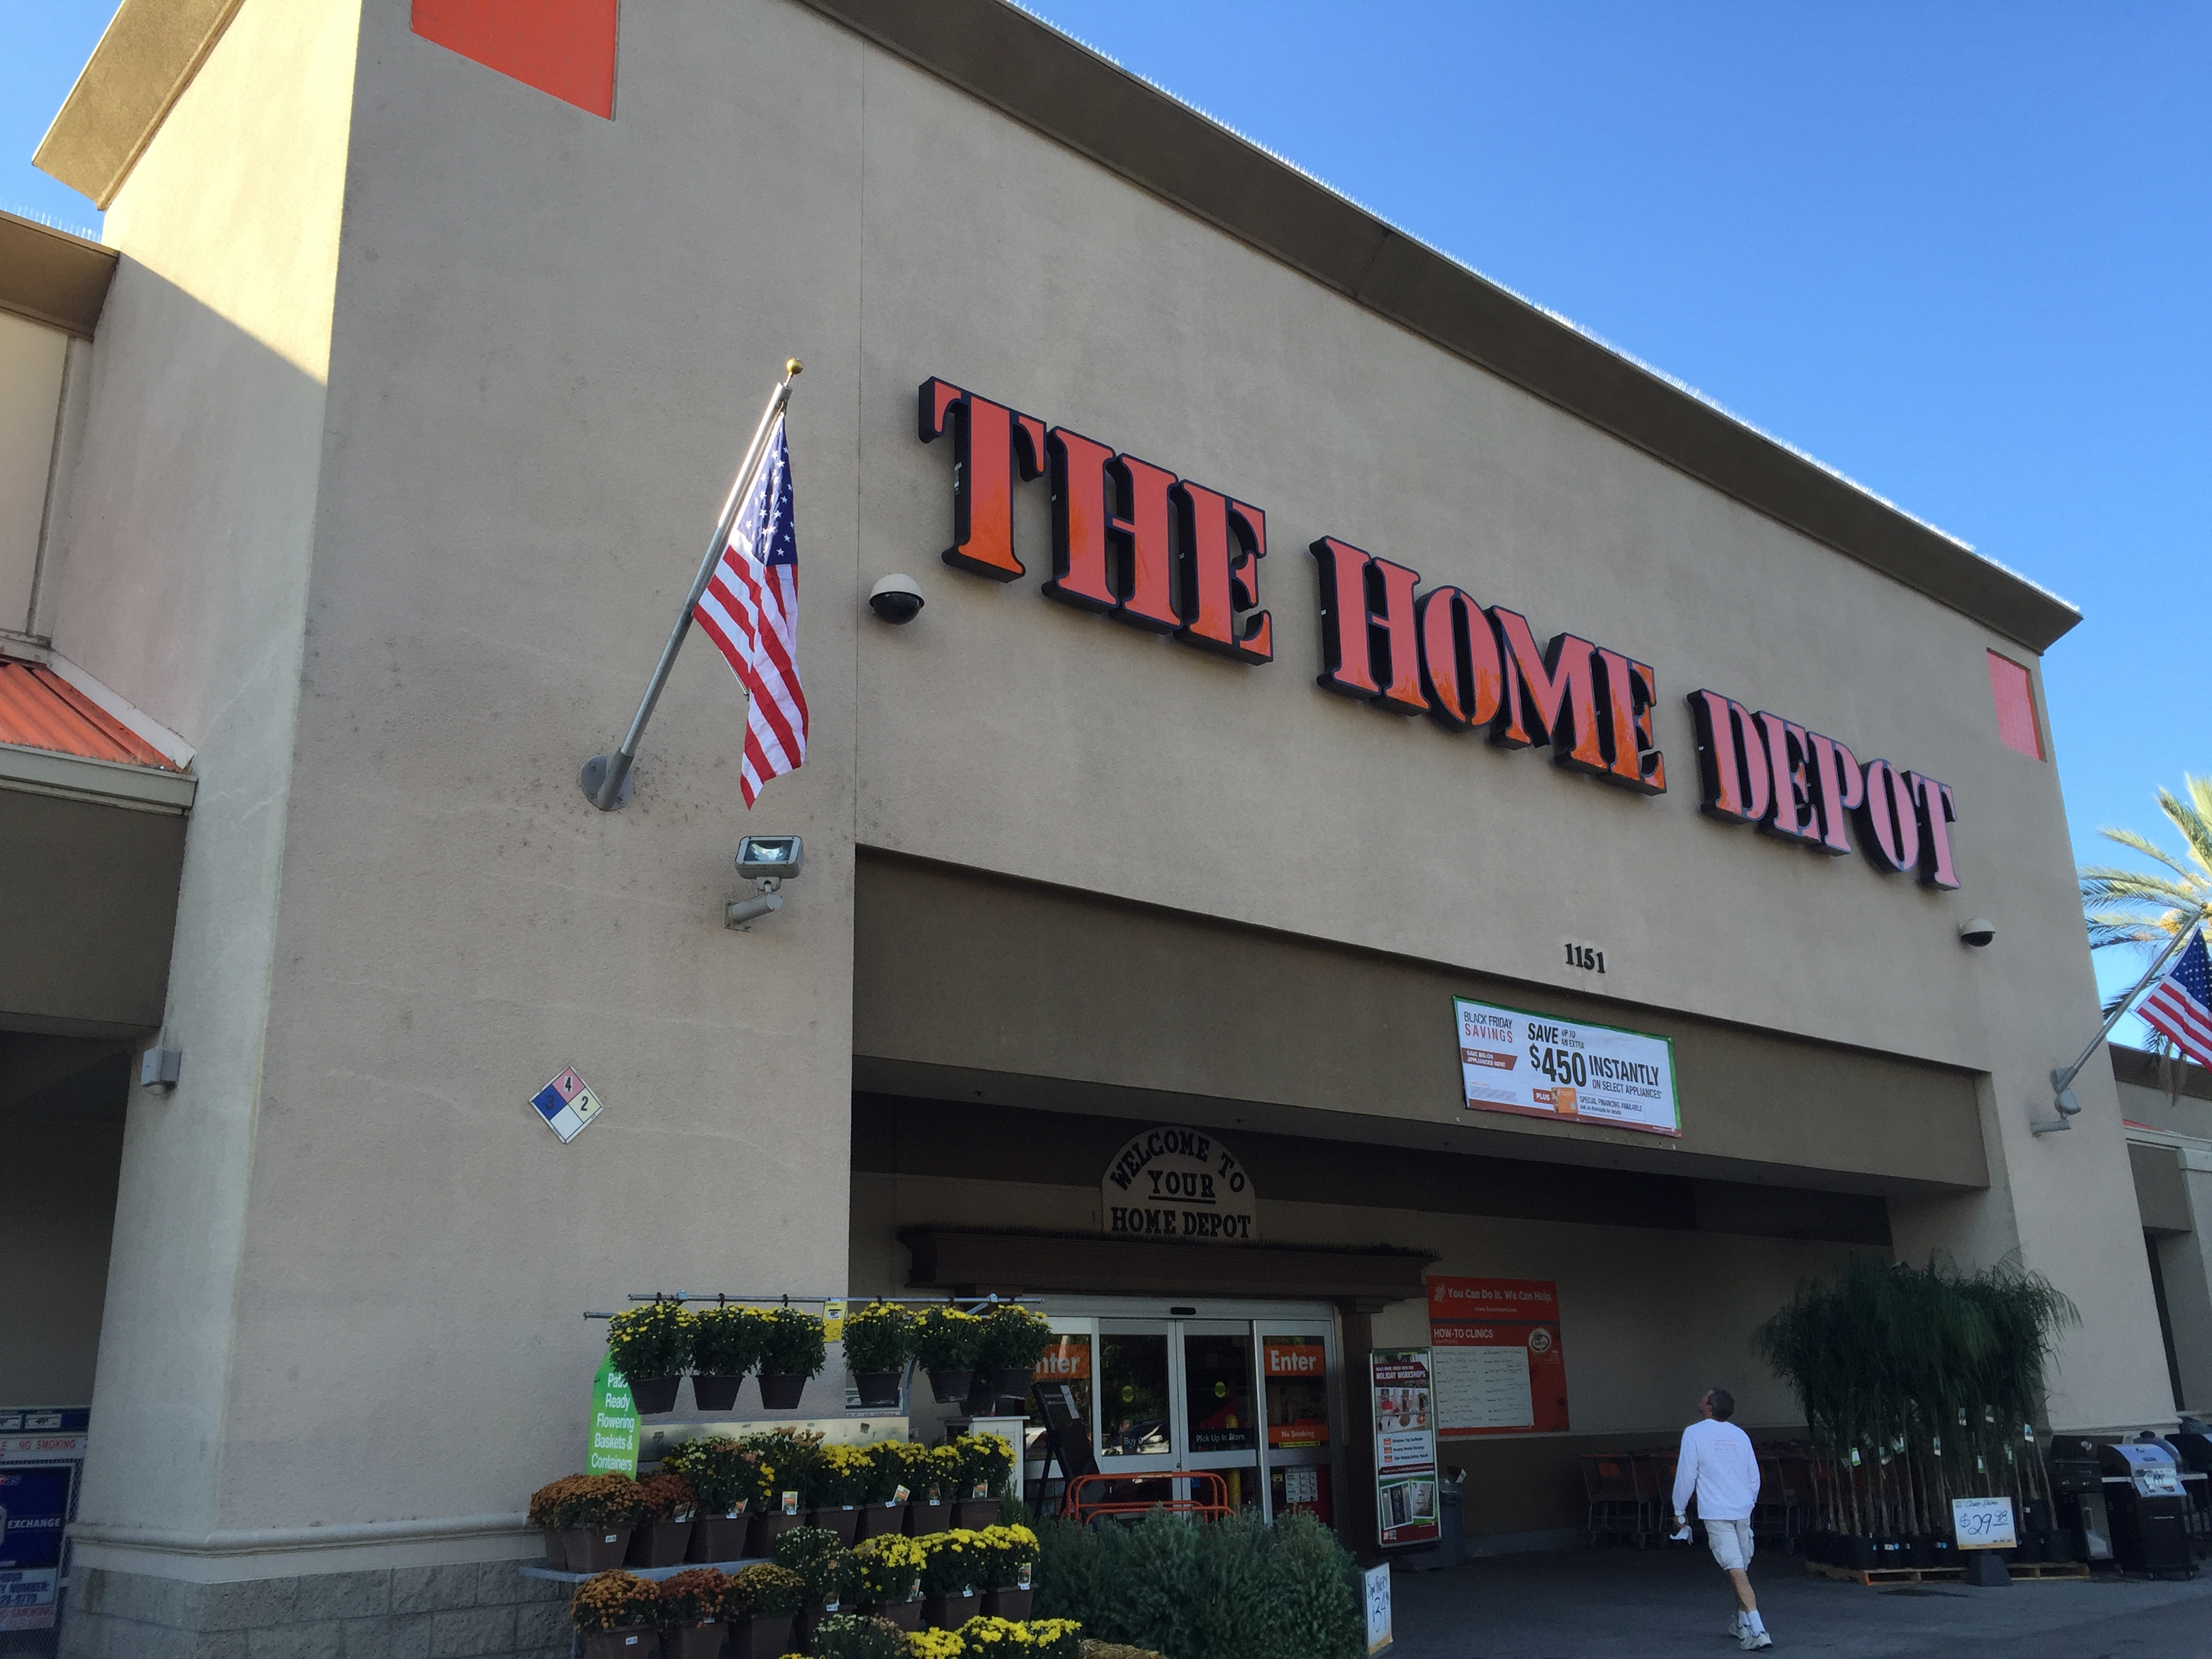 The Home Depot 1151 W Lugonia Ave Redlands Ca Hardware Stores